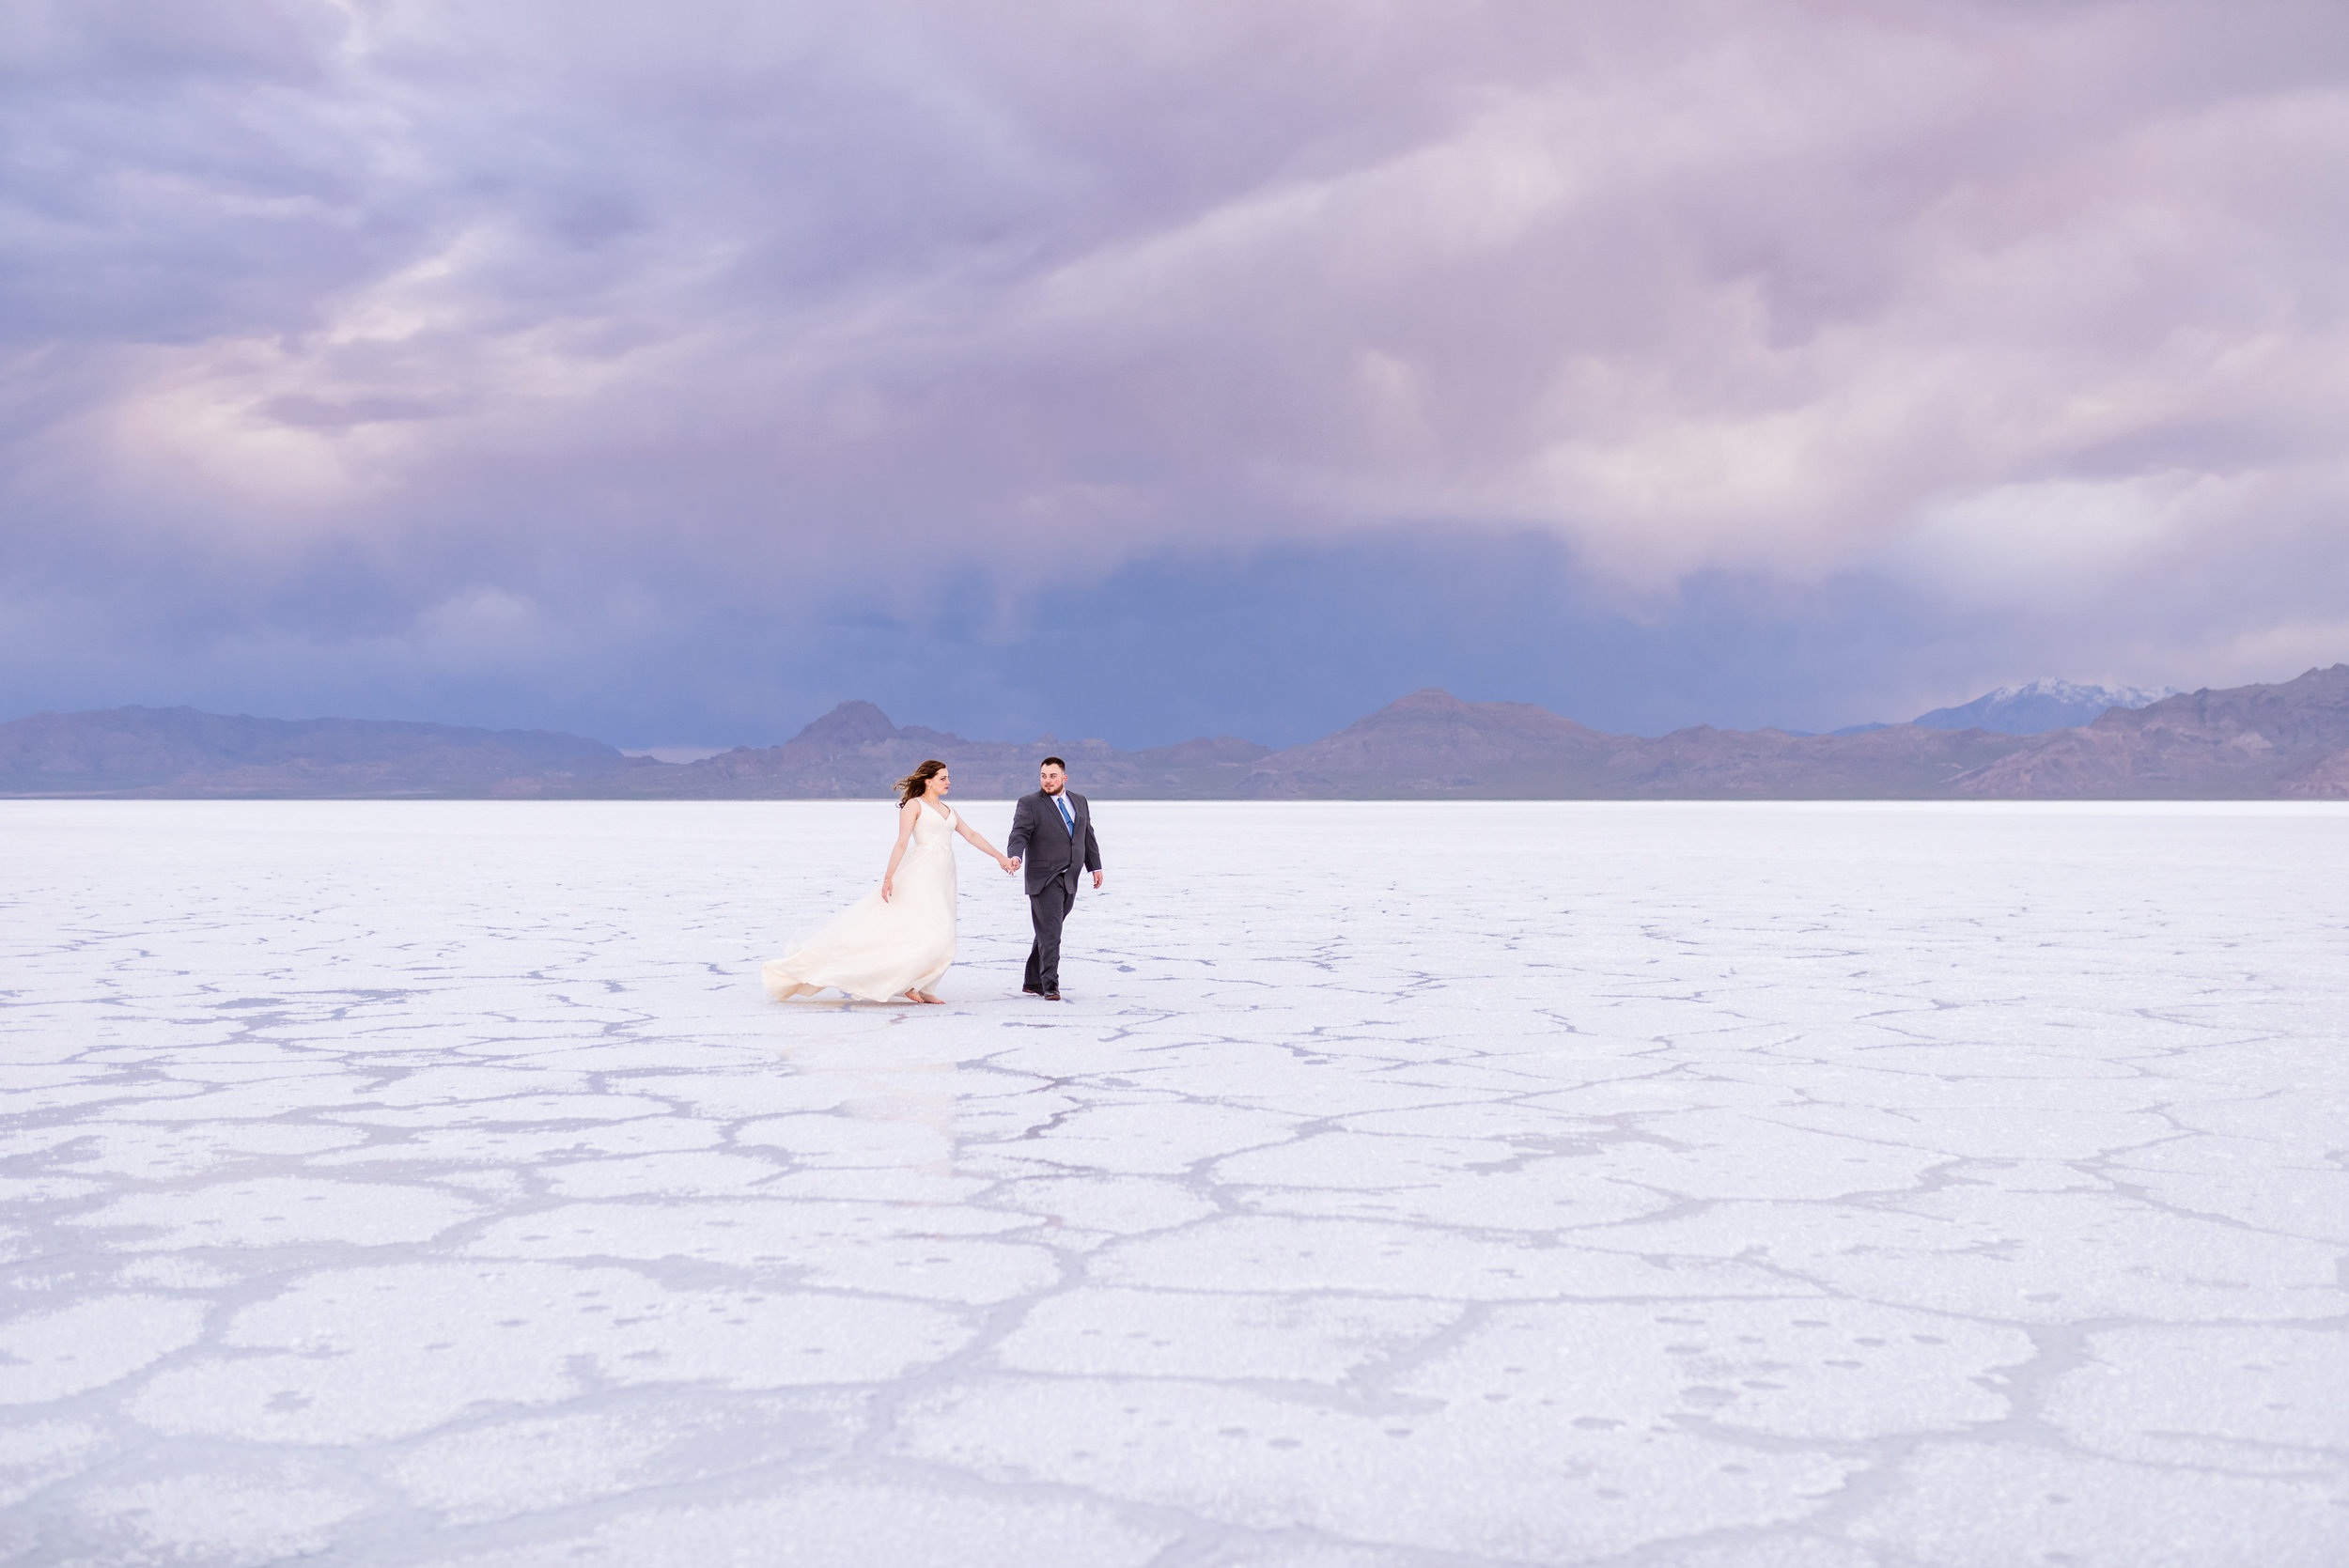 Loving Each other through the storms. Walking pictures of bride and groom. Formals and first look wedding session taken at the Bonneville Salt Flats in Utah during a stormy evening in May. Gold and ivory wedding dress with groom's blue suit and purple tie. Images taken by Coley Cook Photography.